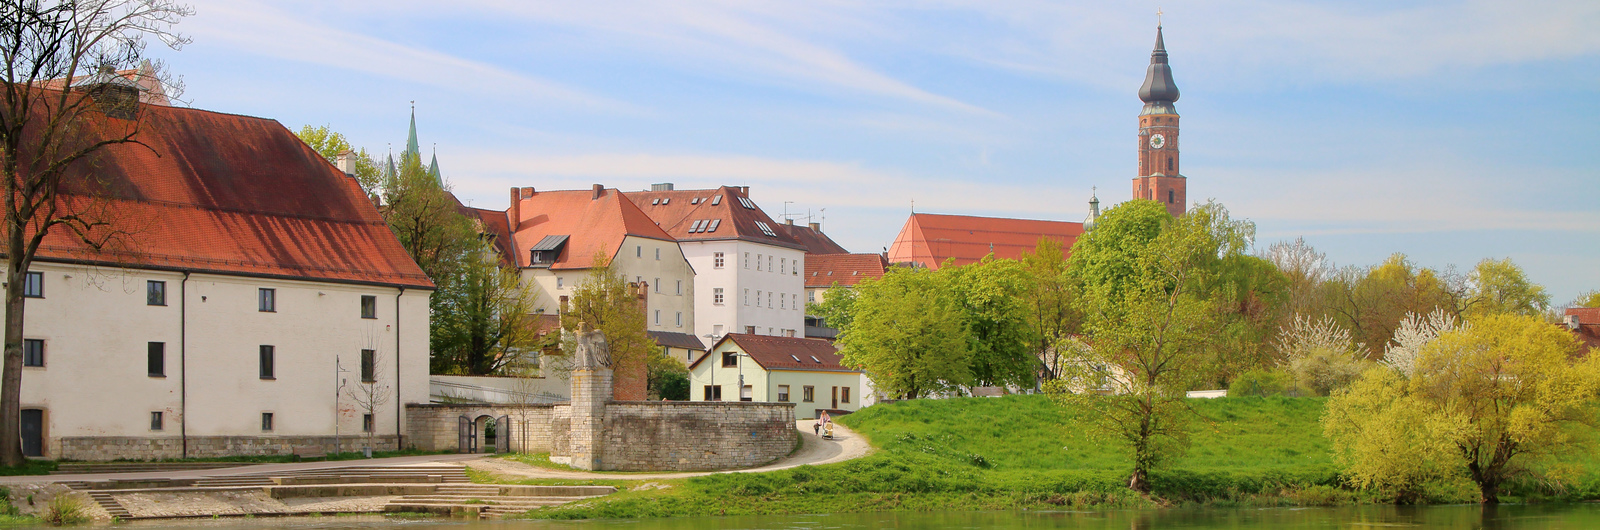 straubing city header